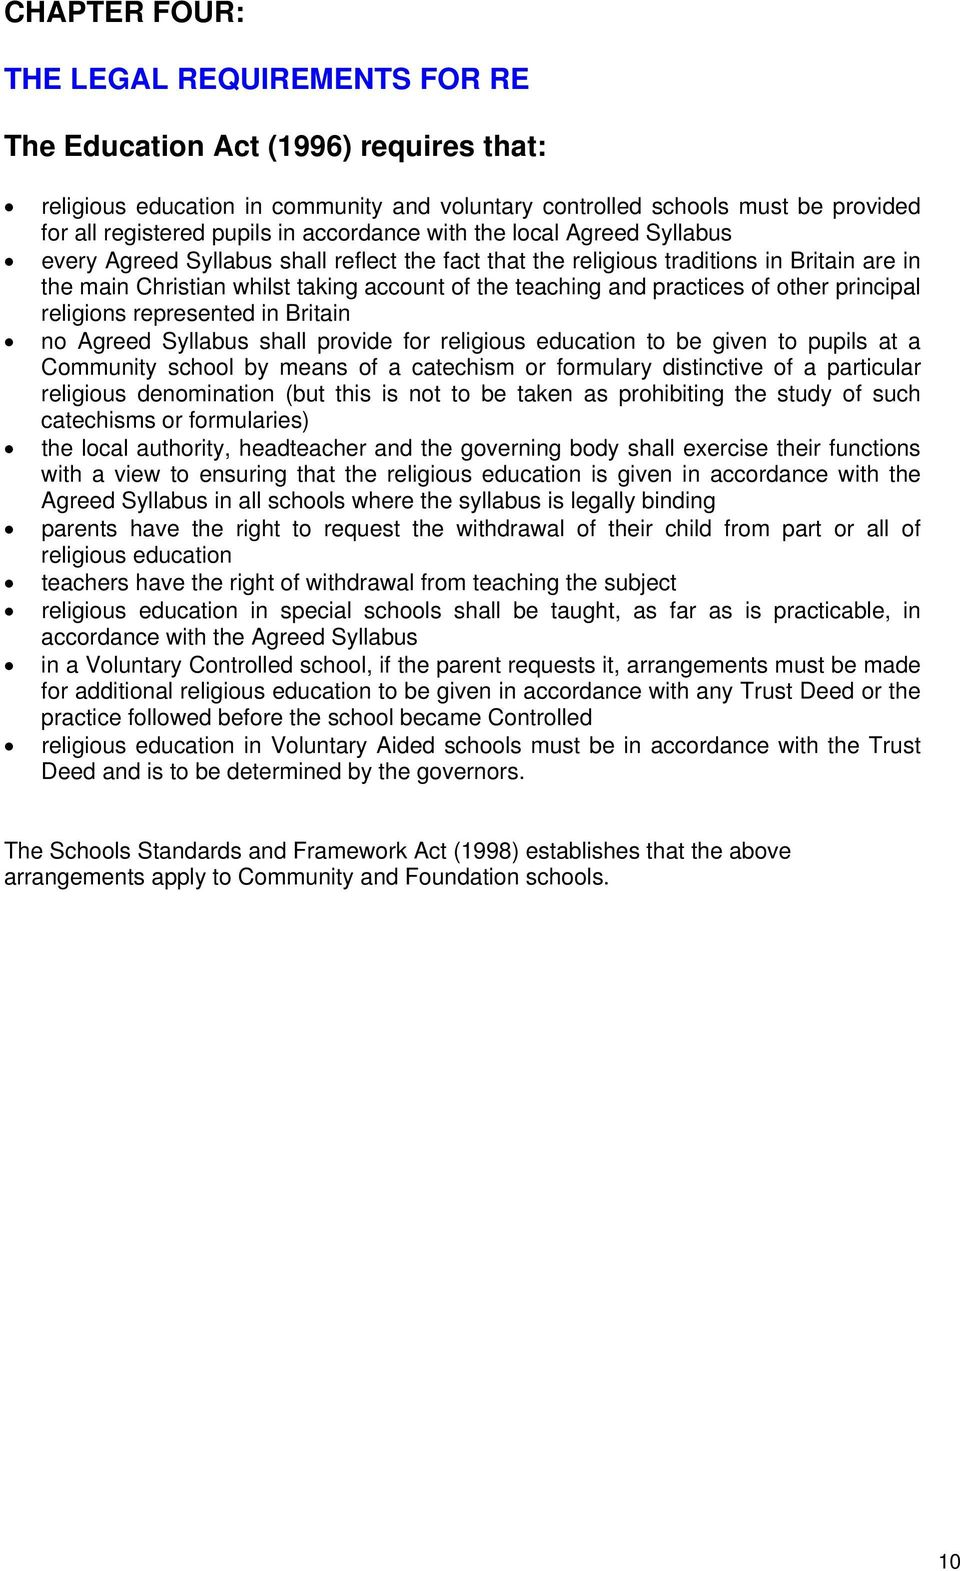 practices of other principal religions represented in Britain no Agreed Syllabus shall provide for religious education to be given to pupils at a Community school by means of a catechism or formulary